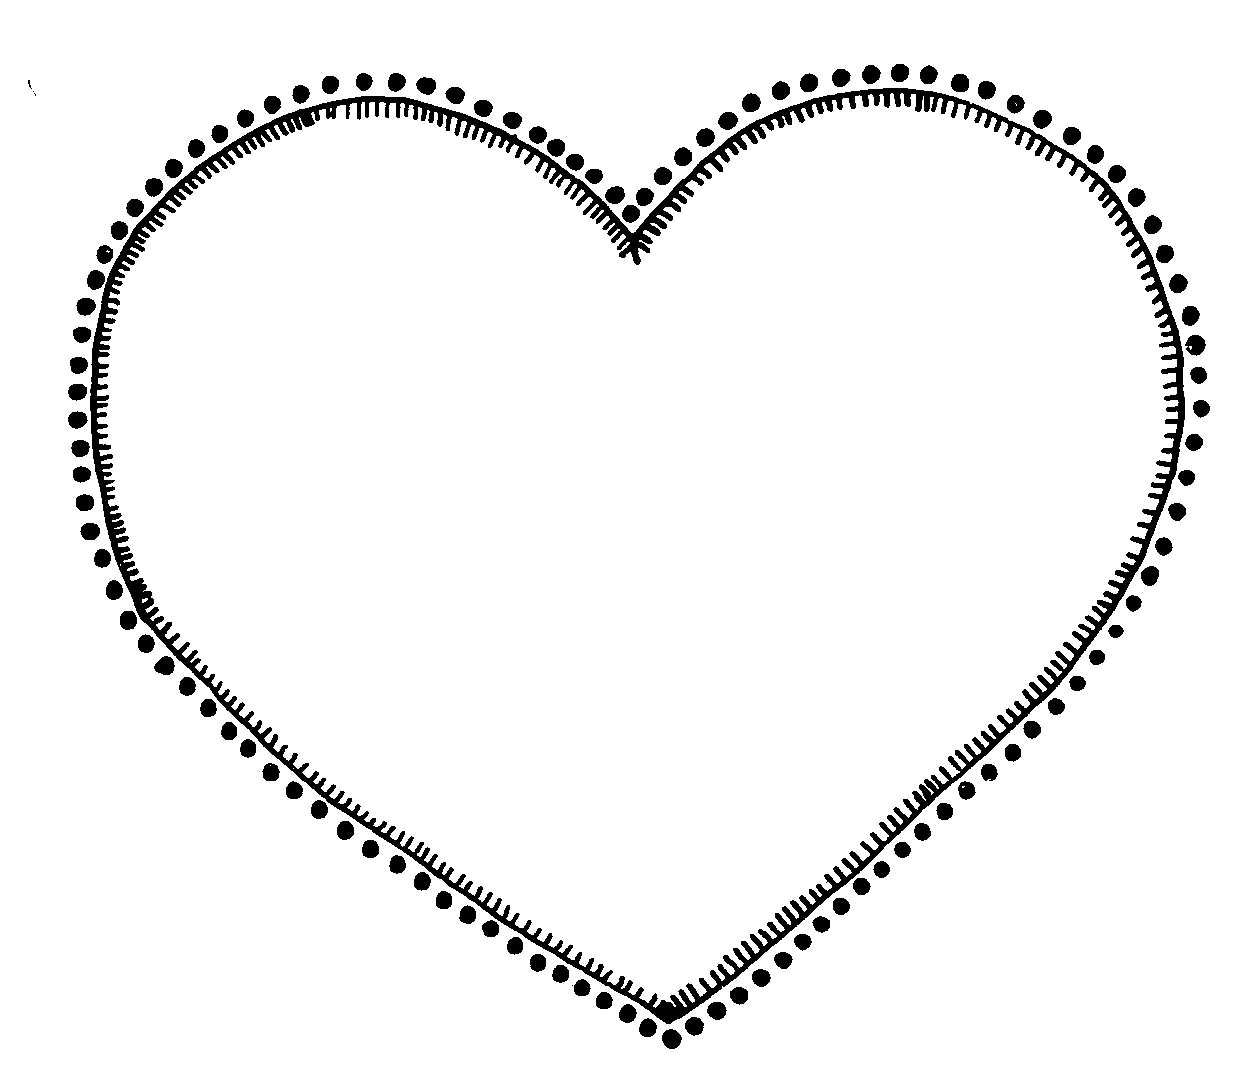 clipart heart black and white clipart panda free clipart images rh clipartpanda com human heart clipart black and white love heart clipart black and white